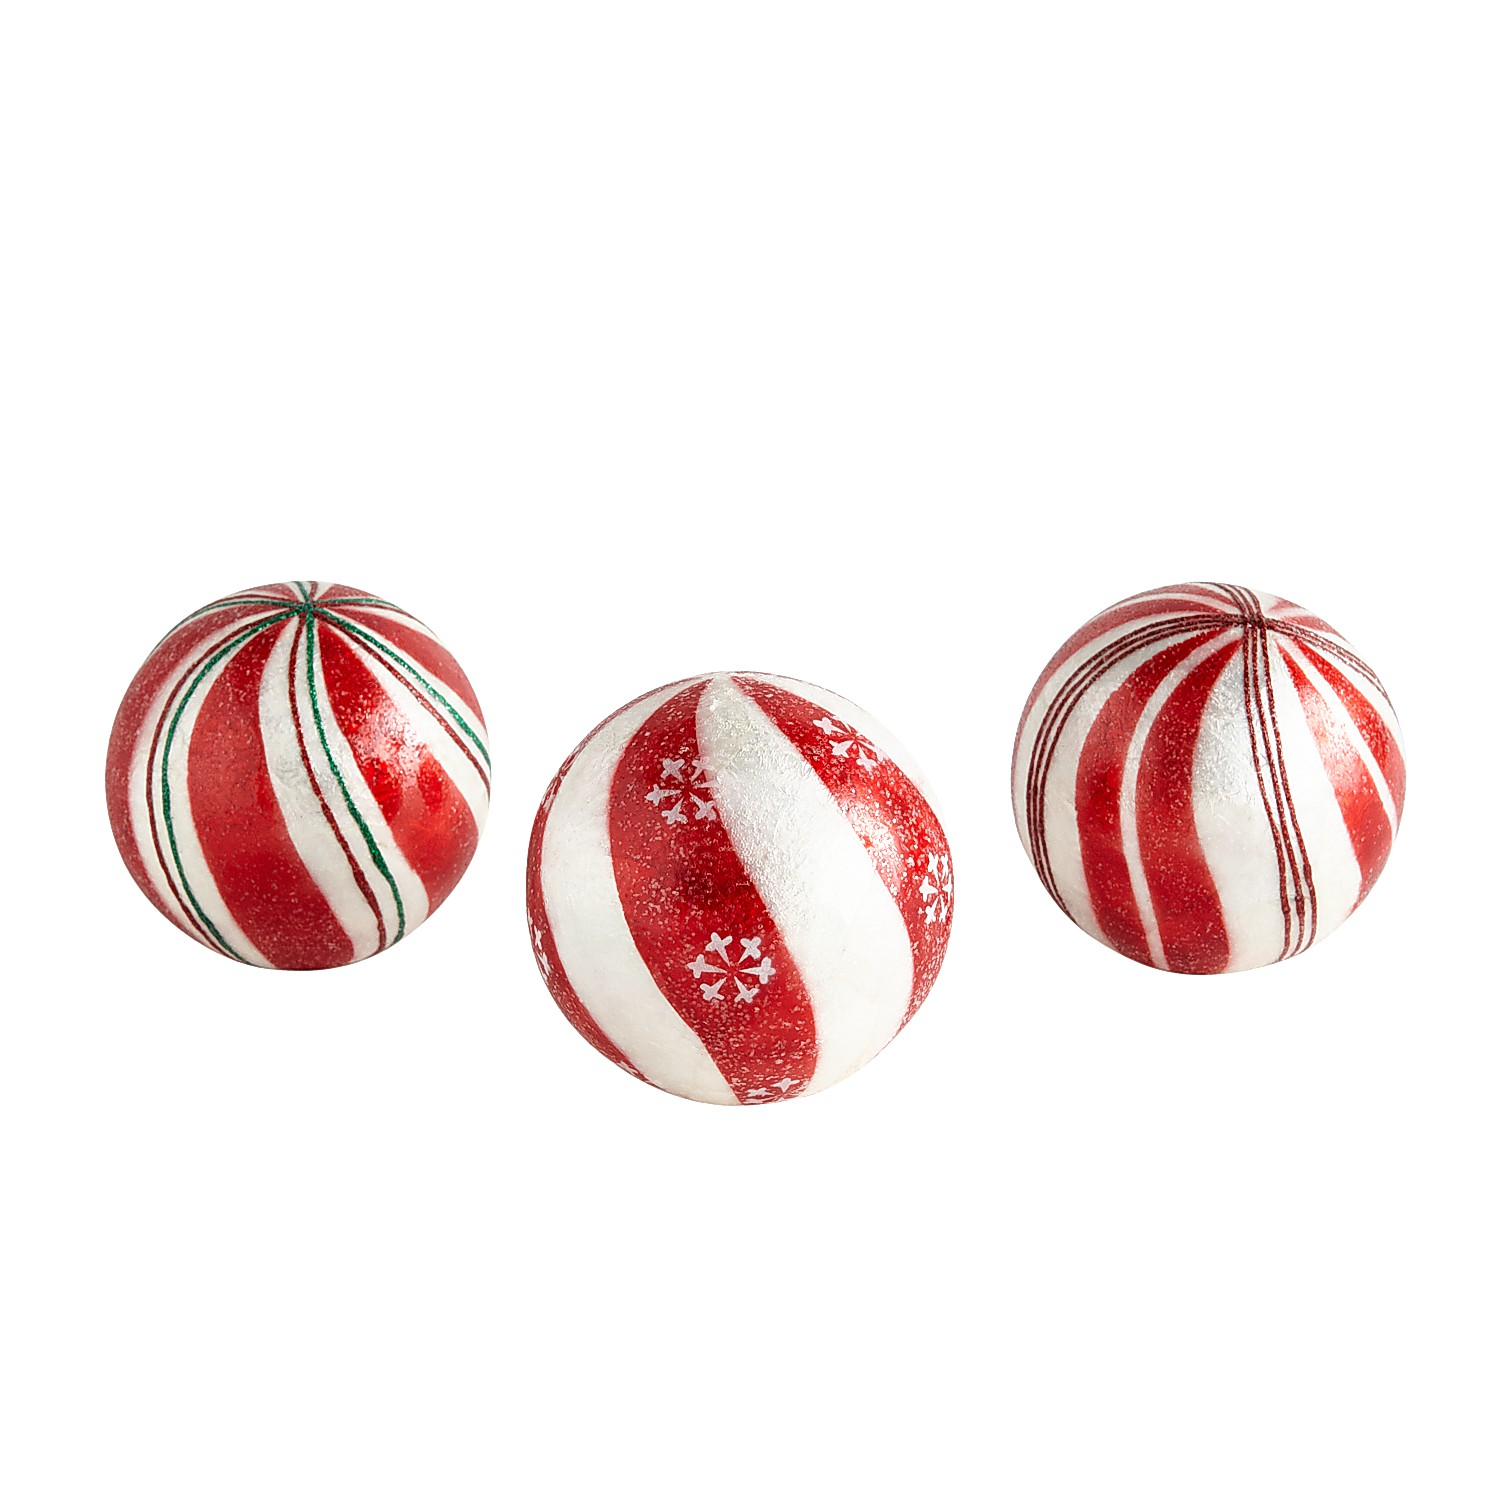 Peppermint Decorative Sphere Set of 3